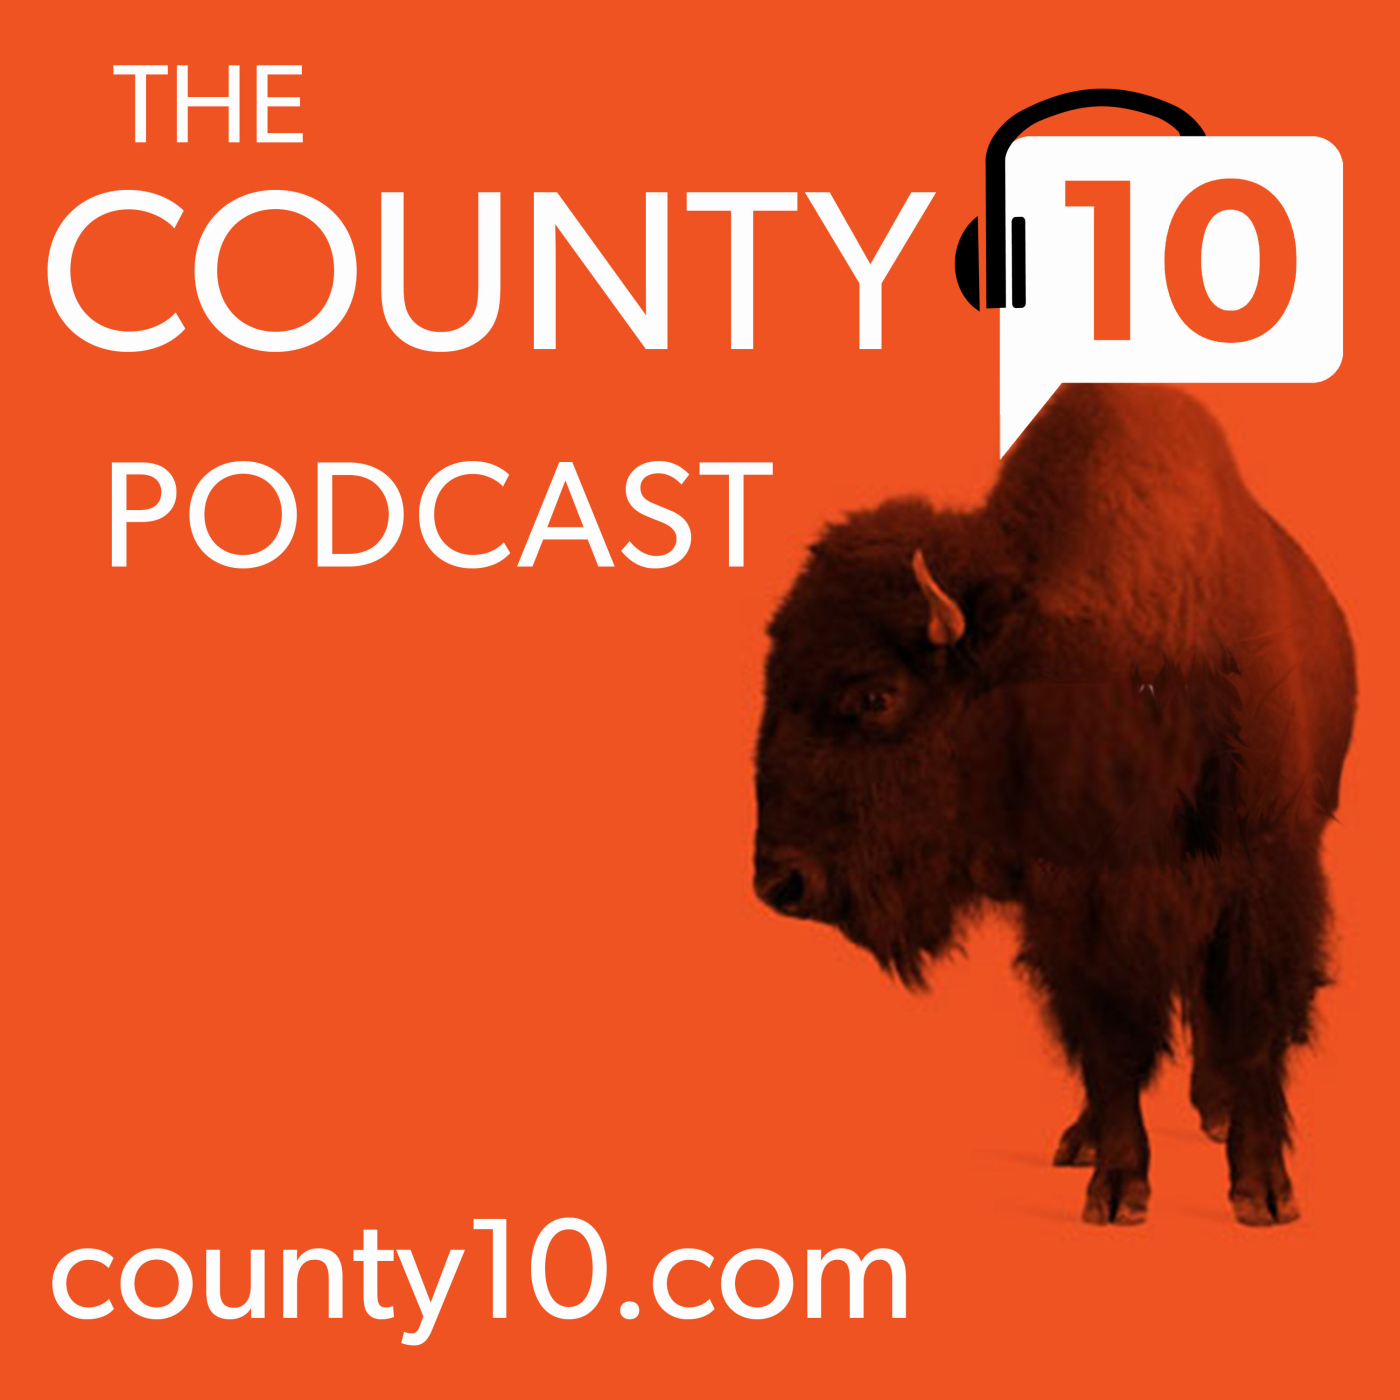 The County 10 Podcast